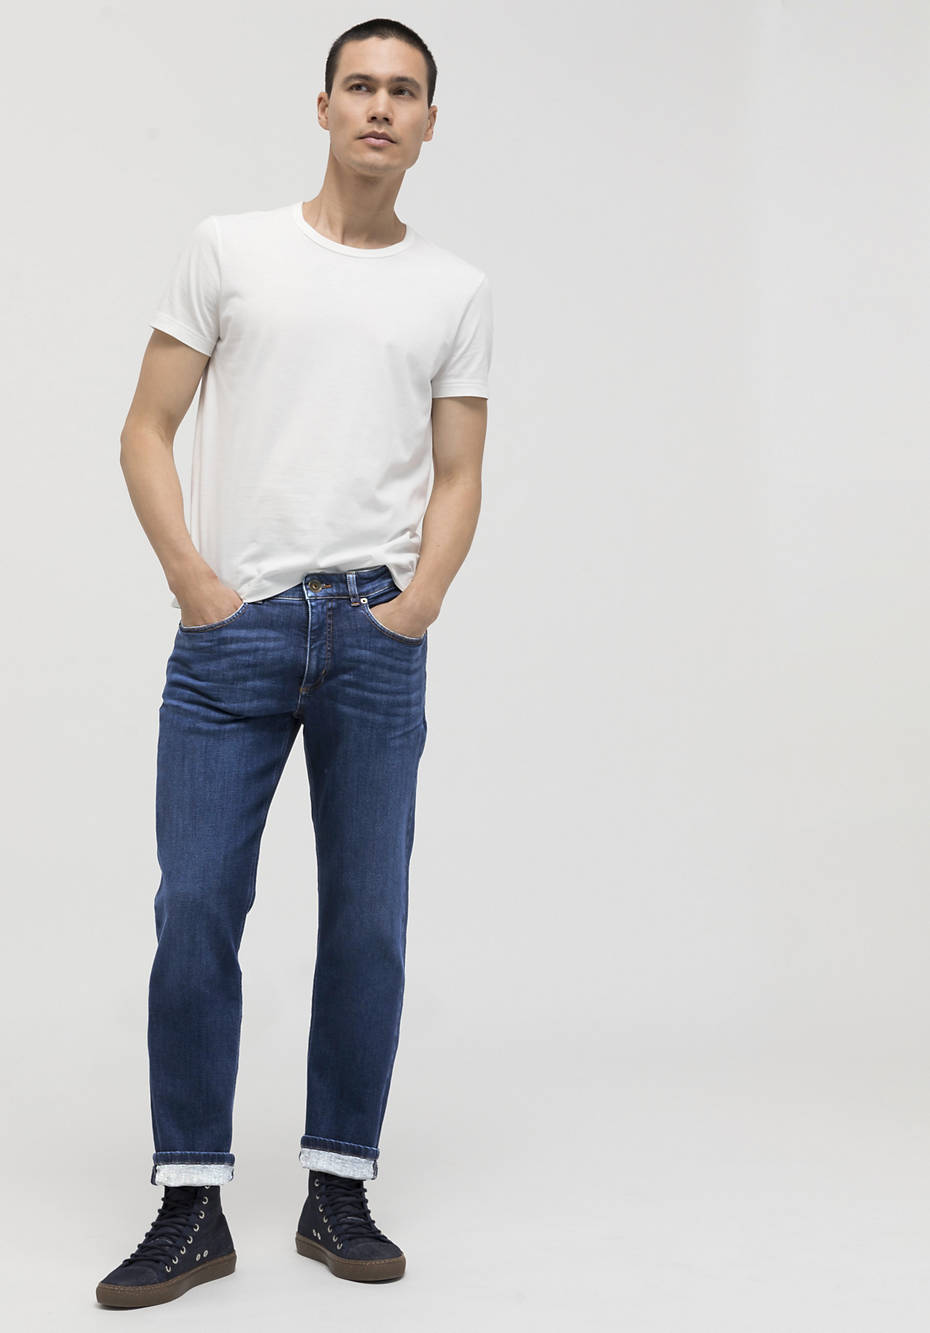 Ben straight fit jeans made of organic denim